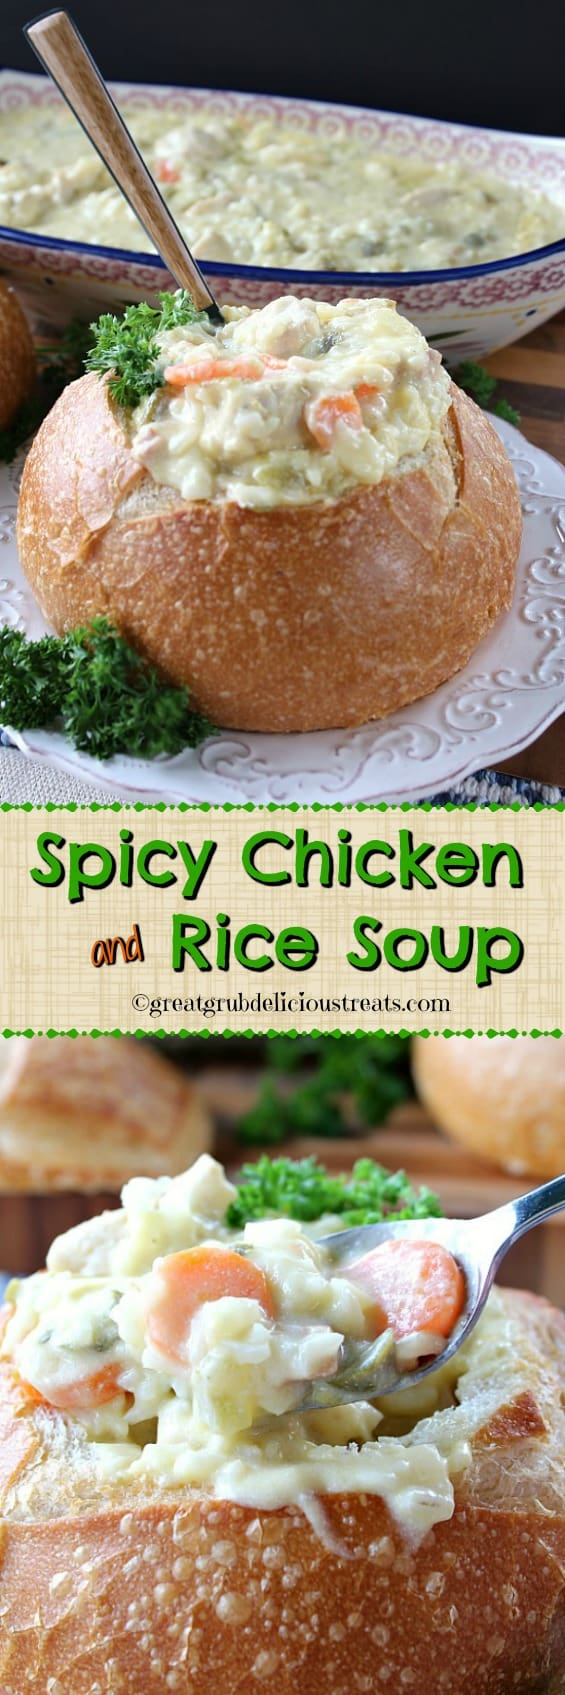 Spicy Chicken and Rice Soup